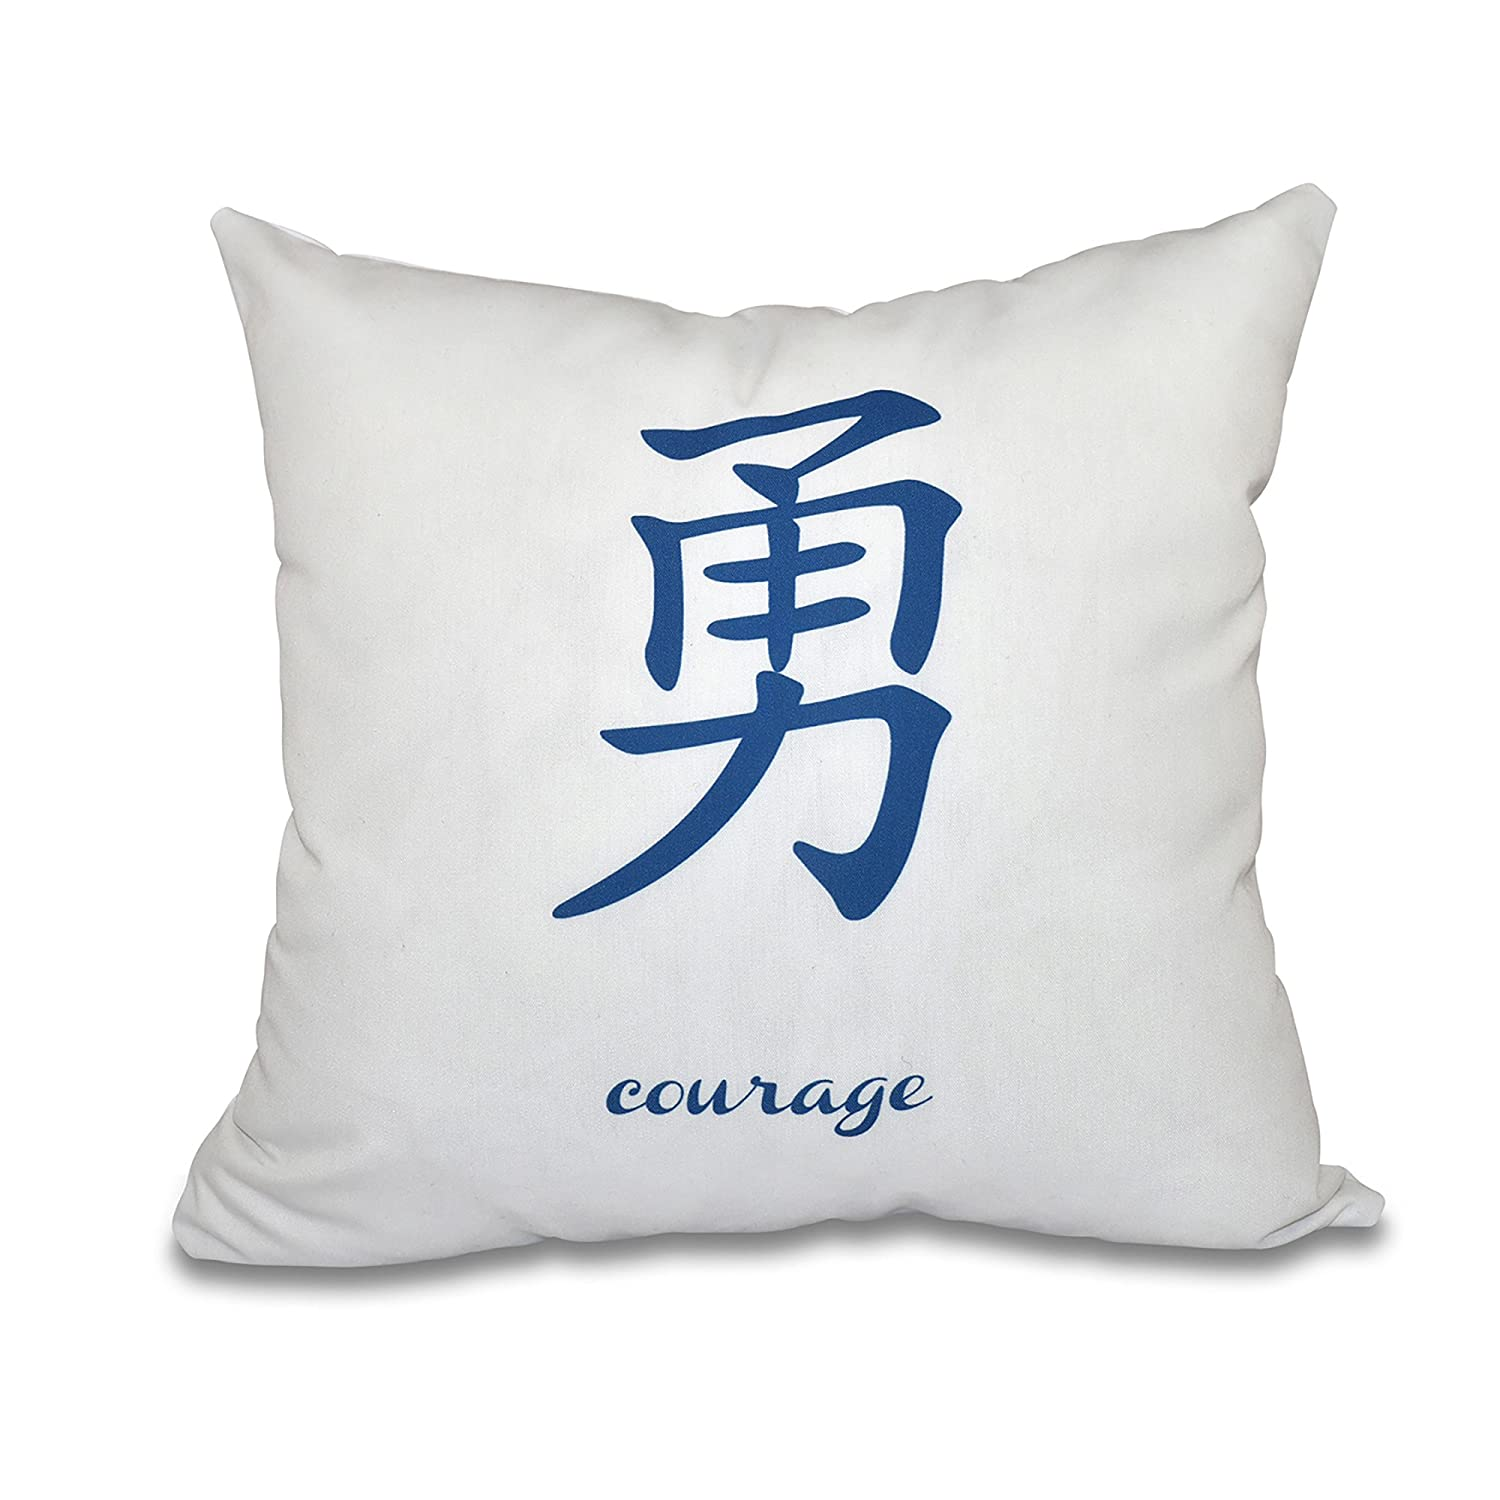 E by design PWN508BL40-16 16 x 16-inch, Courage, Word Print Pillow, Blue 16x16,